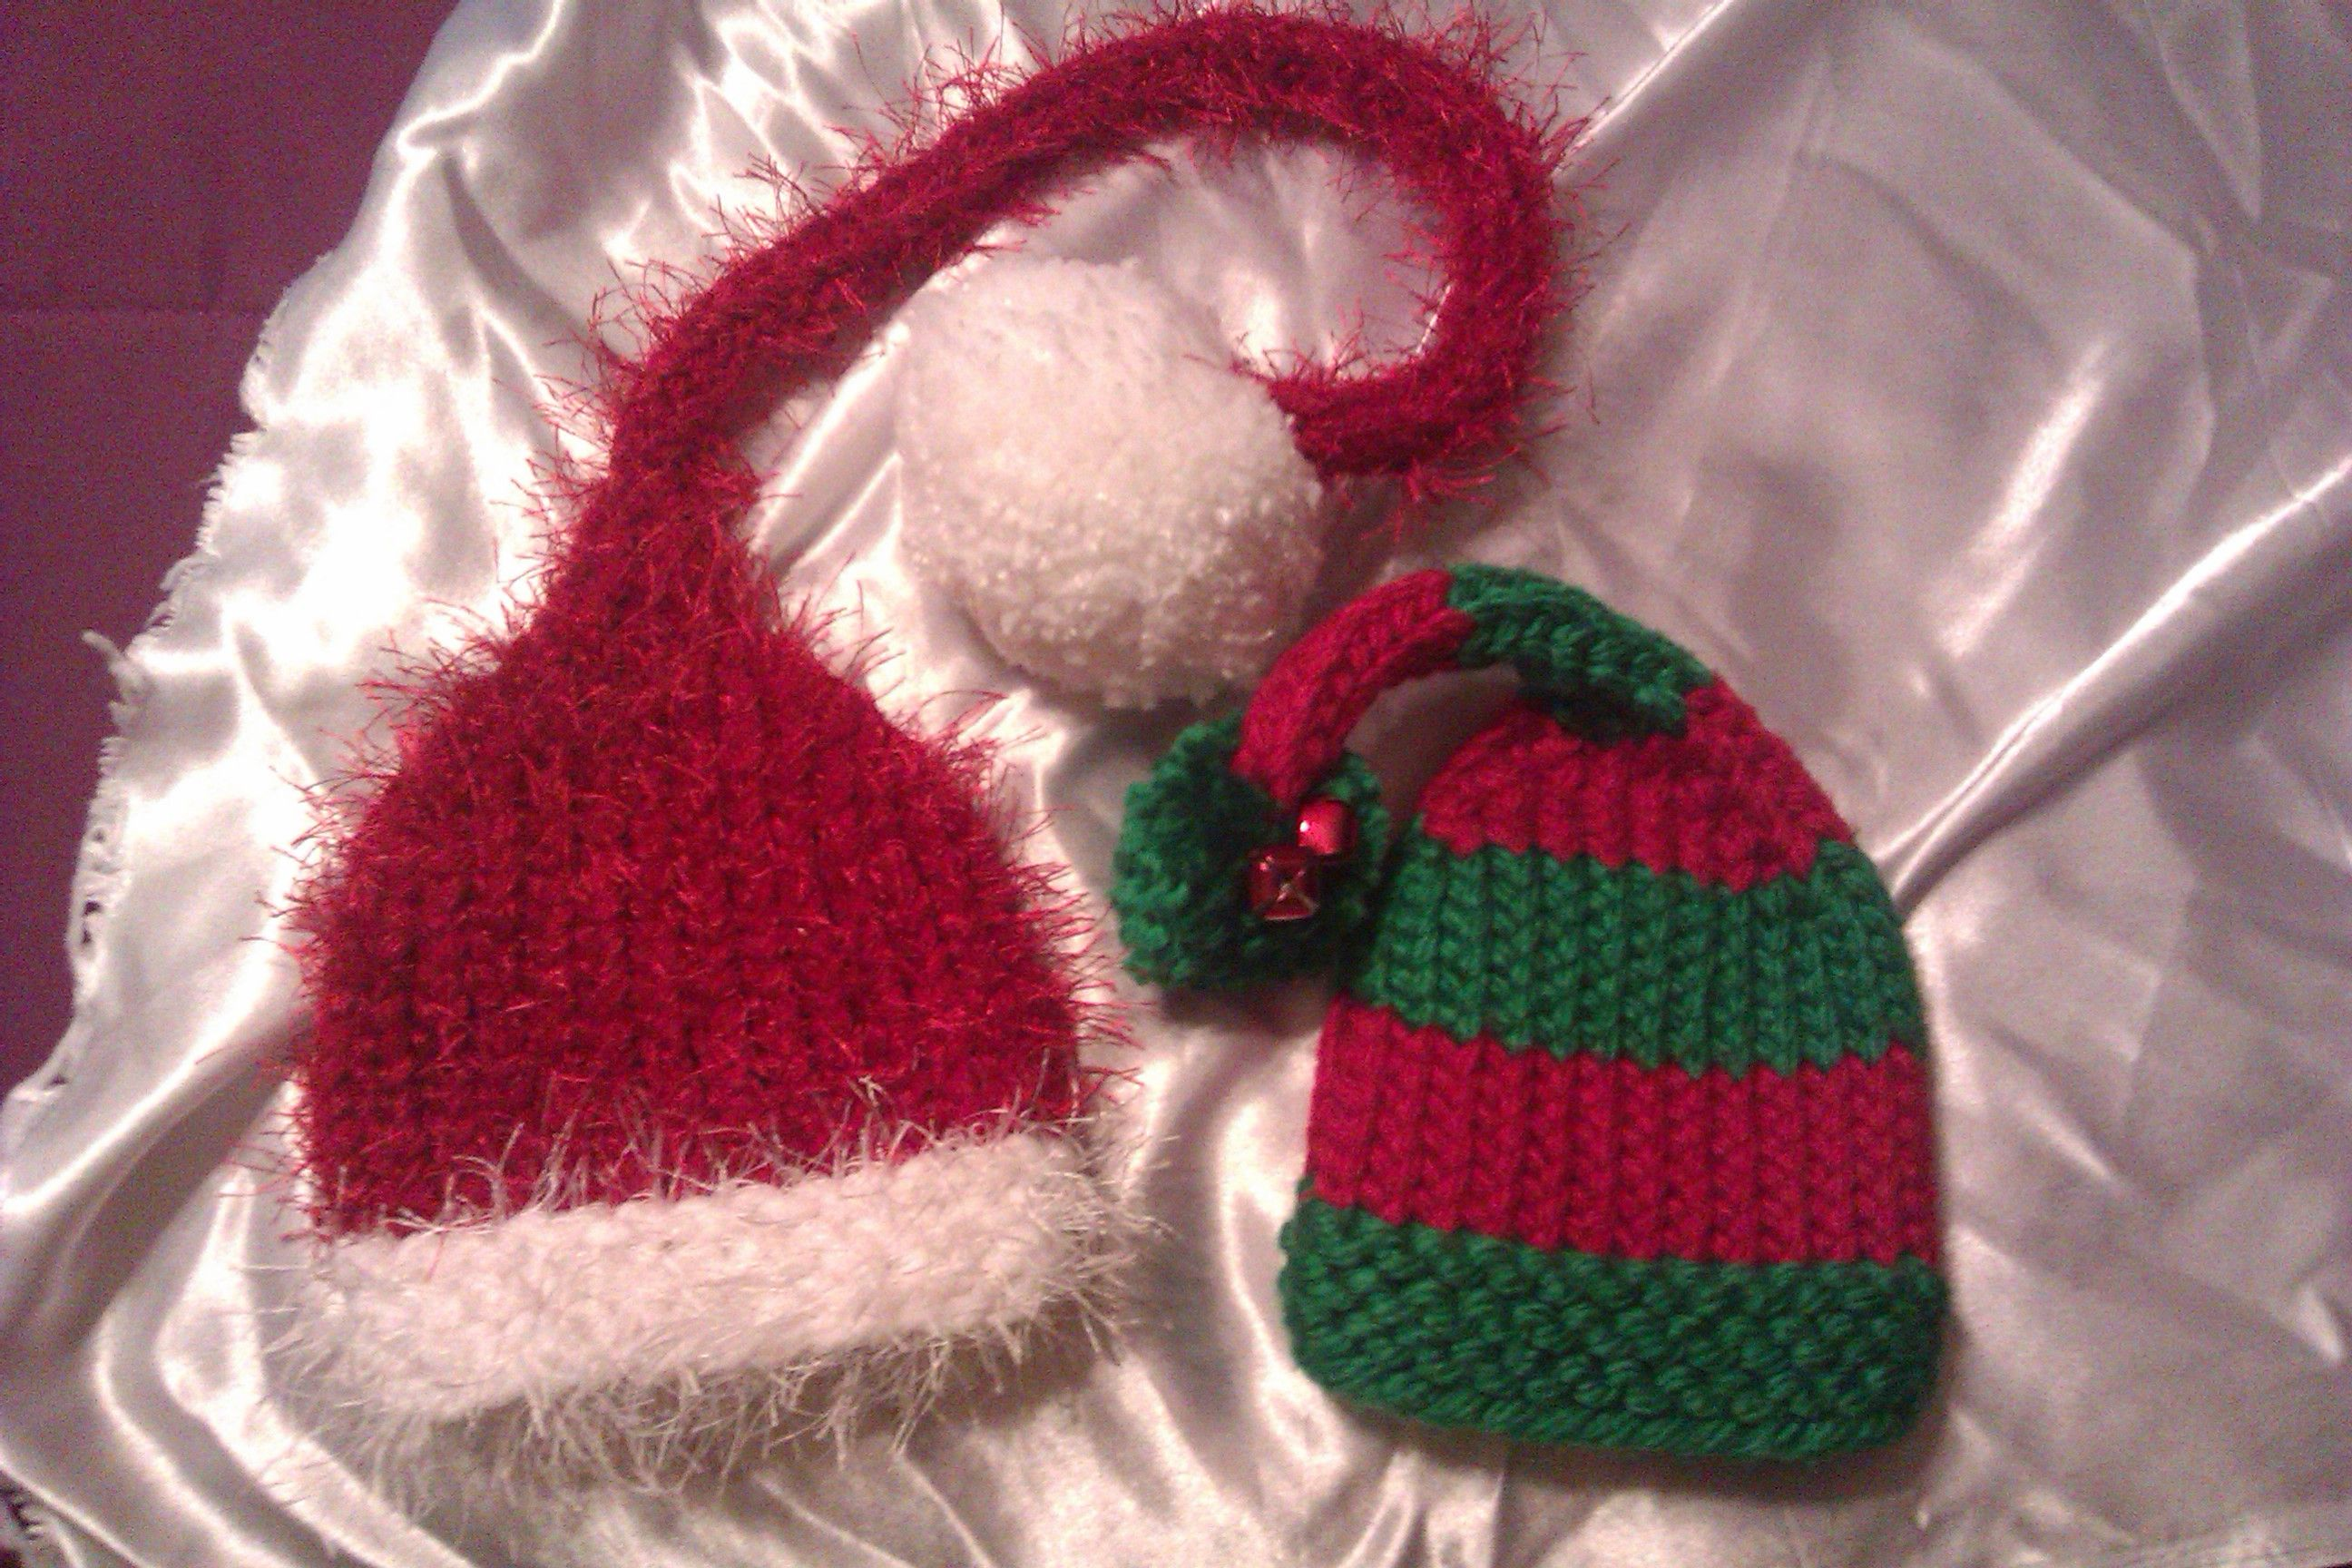 Knitting Patterns For Christmas Hats : Loom Knitted Christmas Pixie Hats loom knitting Pinterest